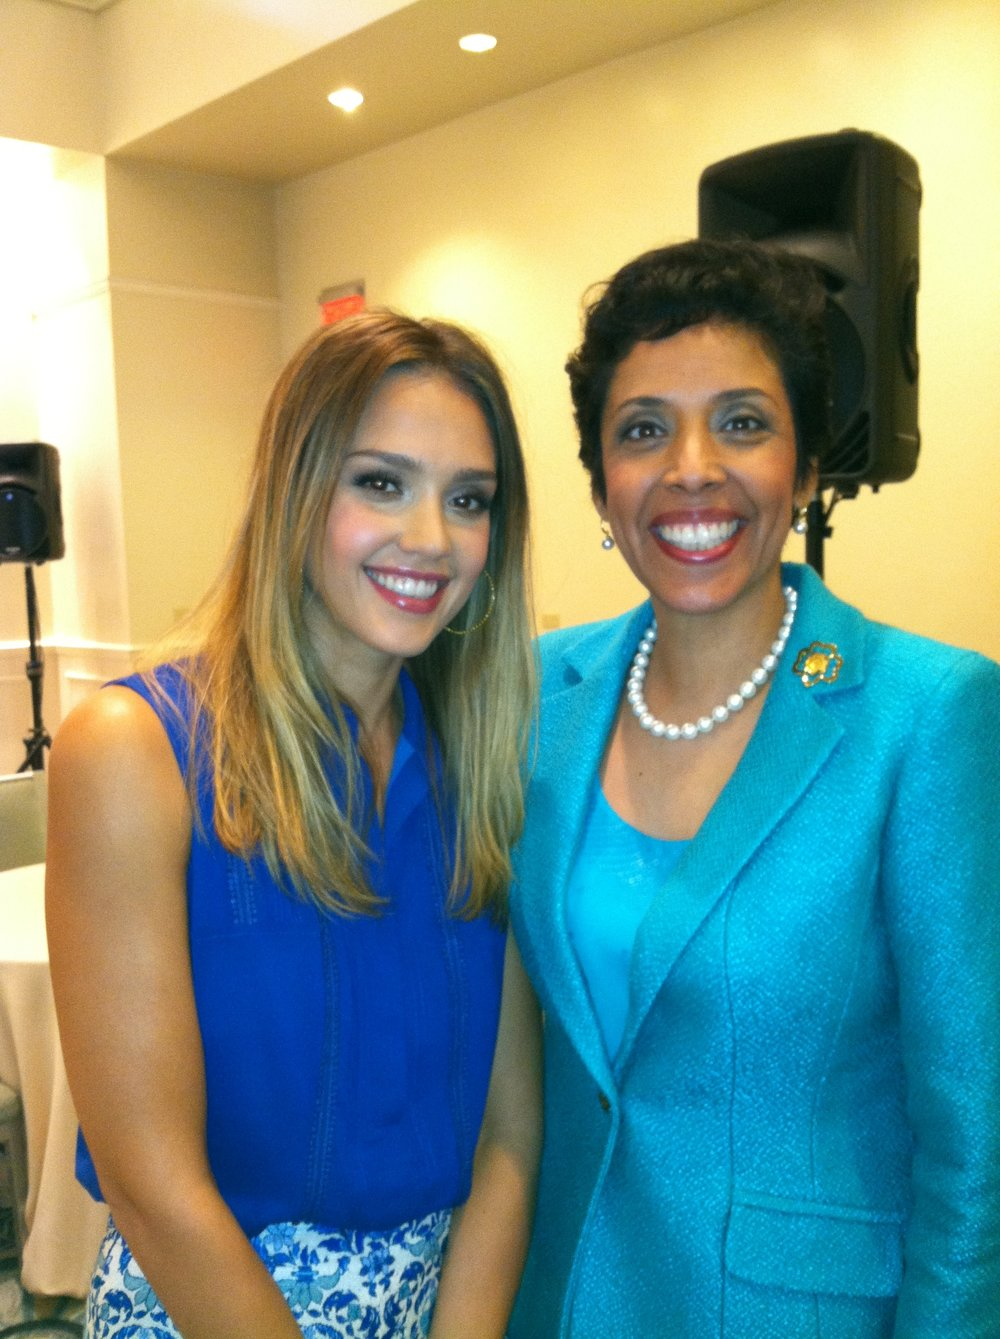 Actor & Entrepreneur Jessica Alba with Anna Maria Chávez